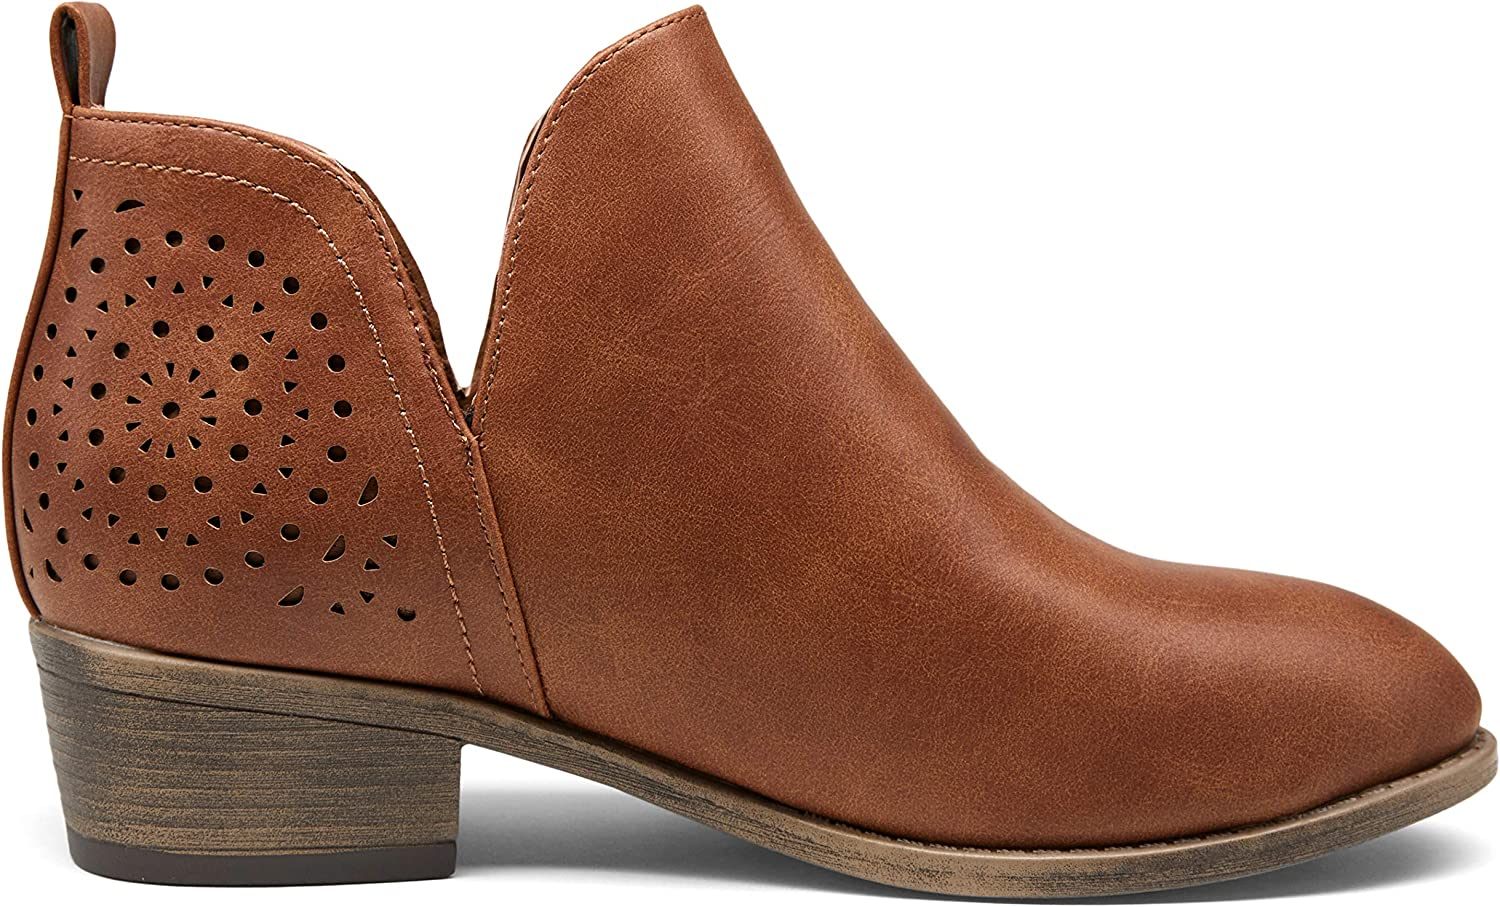 VEPOSE Women's Ankle Boots Low Cutout Heels Latest Finally resale start item Perfo Chunky Booties